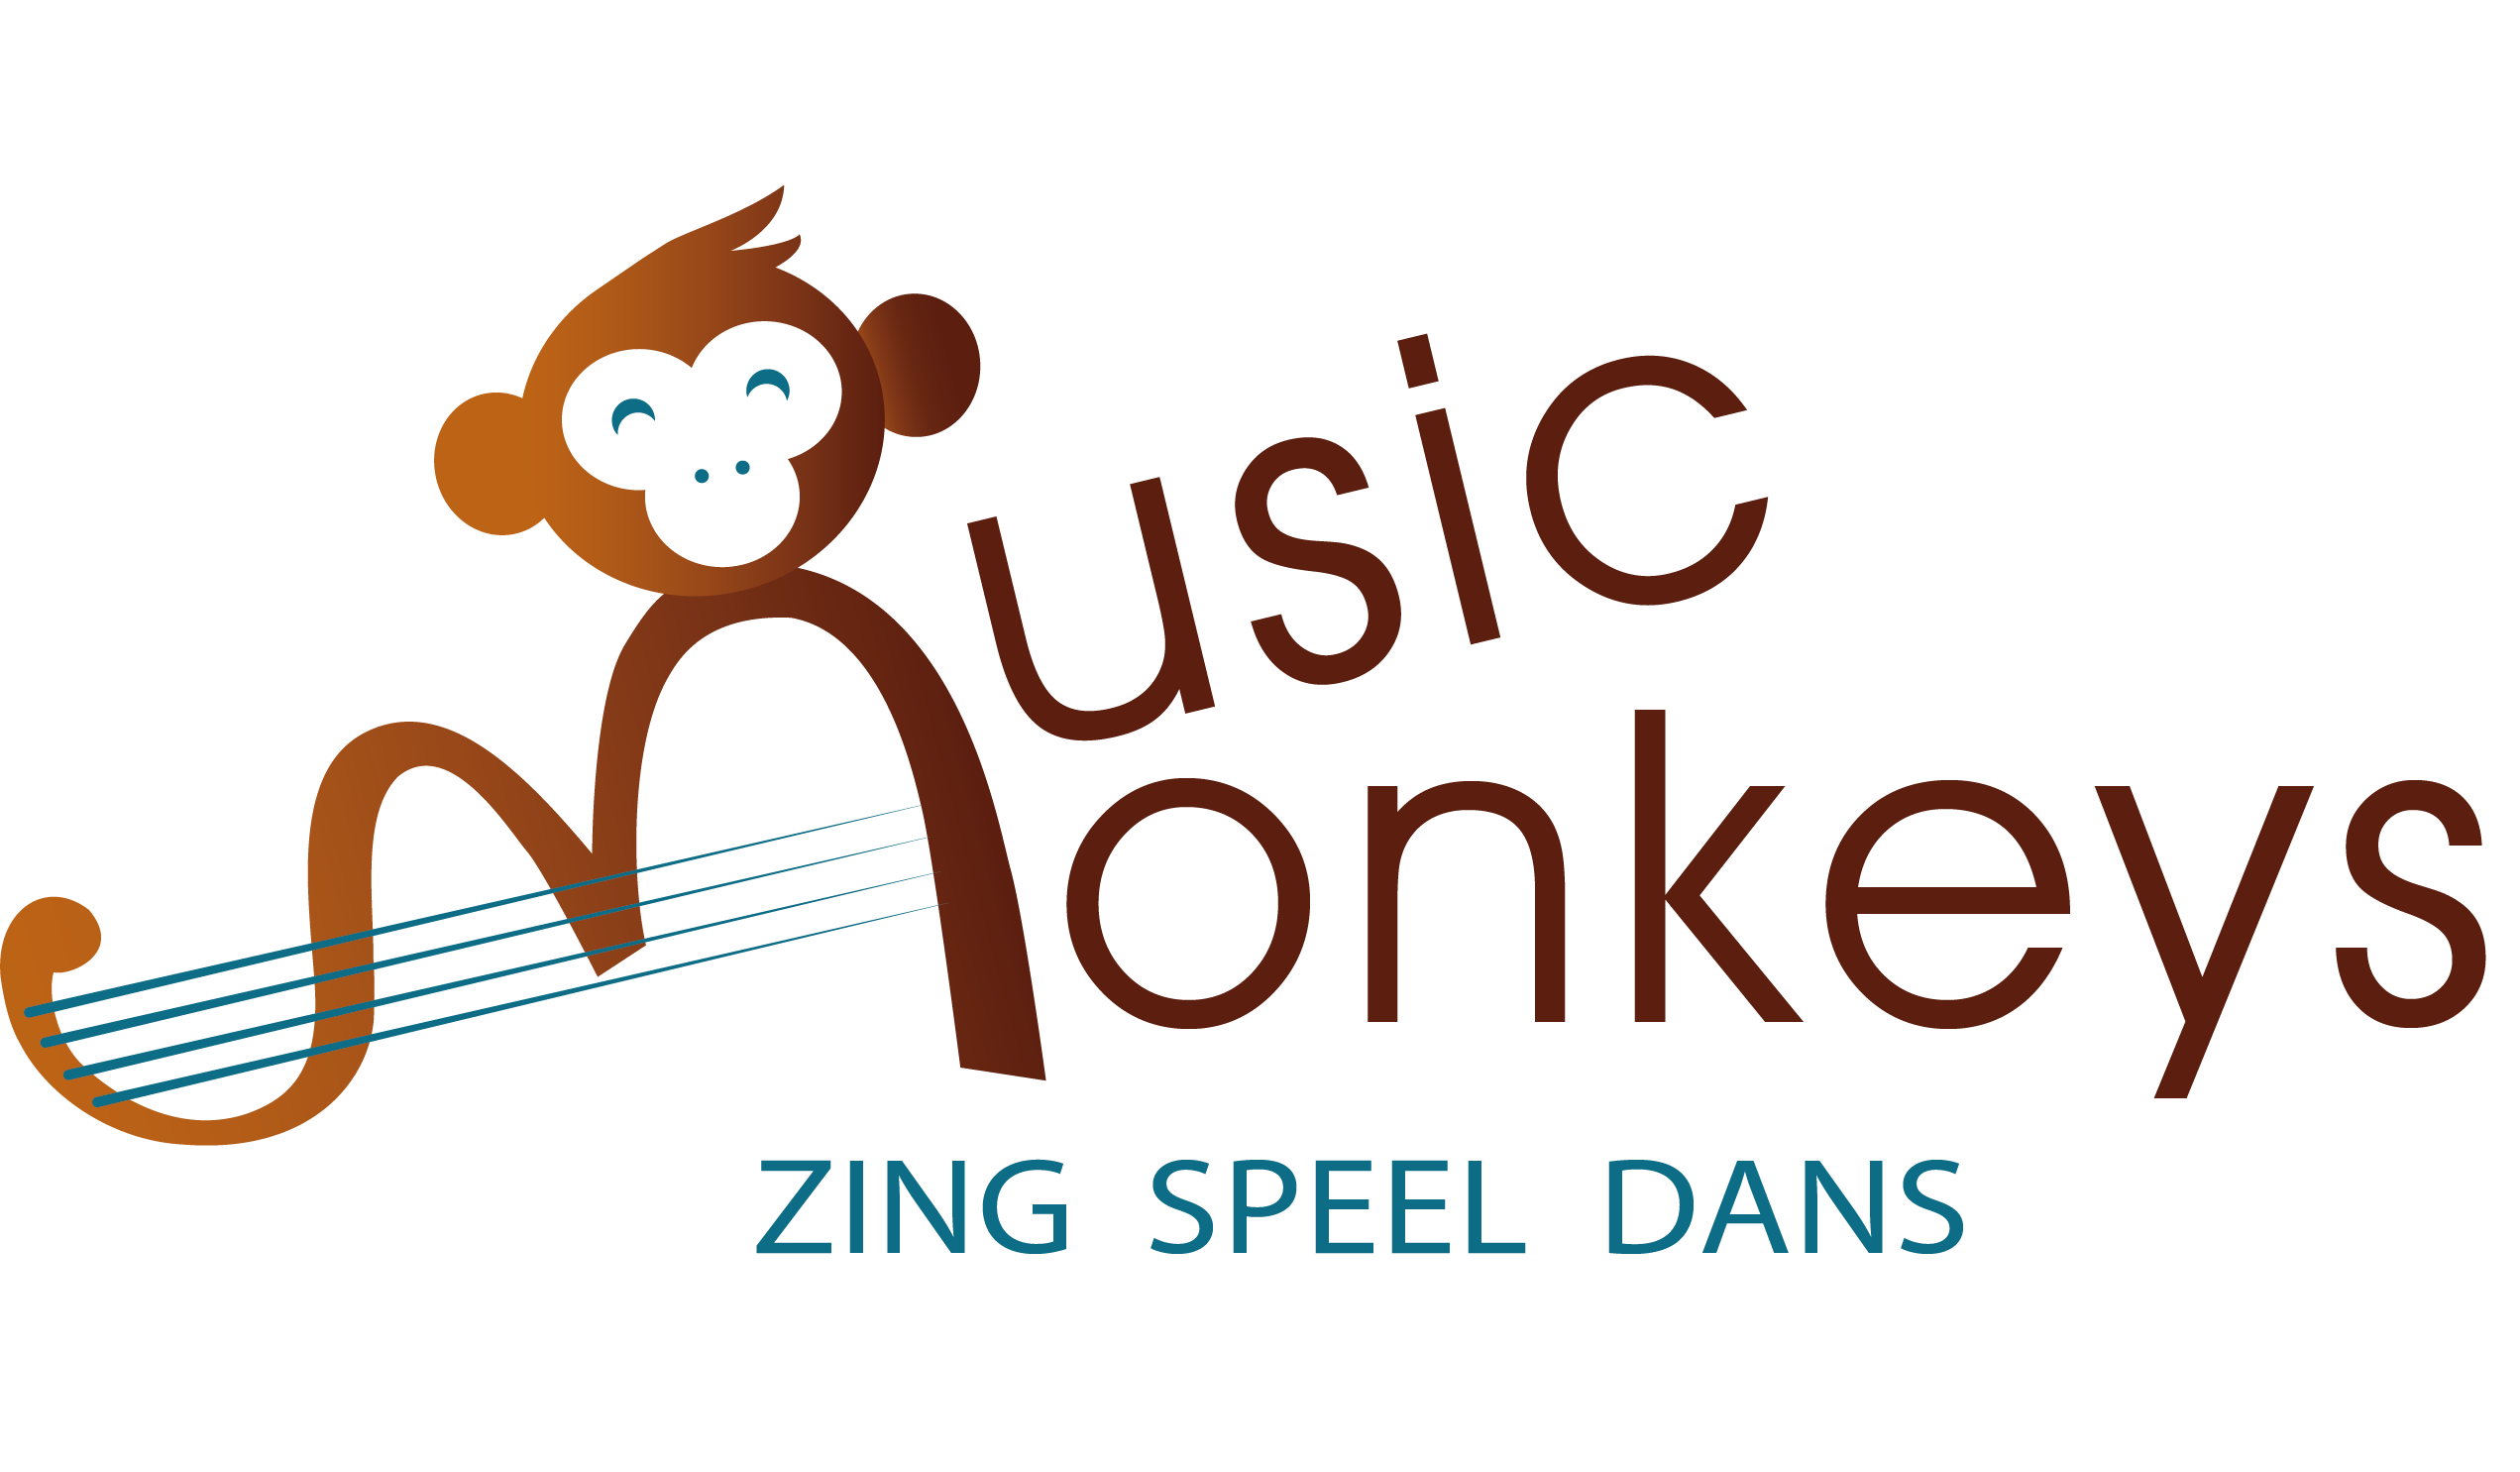 Music Monkeys